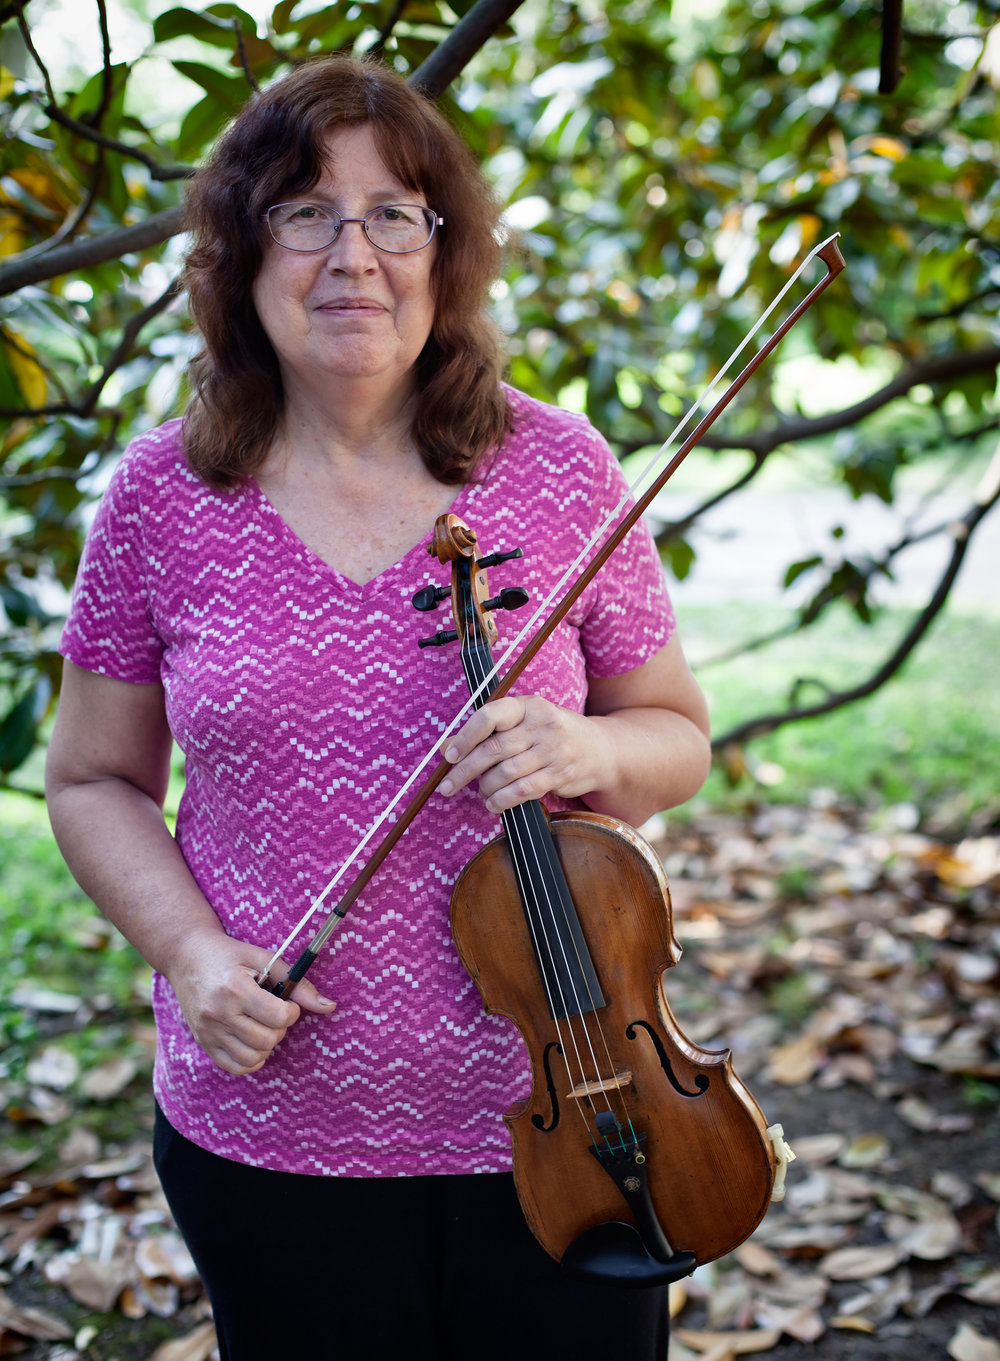 Nancy staidle: violin -  Nancy Staidle received a Bachelor of Music in violin performance degree from San Diego State University where she performed the Barber Concerto with the Orchestra. She has a Master of Music degree in violin performance from the University of Southern California where her principal teacher was Alice Schoenfeld.As a professional violinist she played one year with the Nashville Symphony and has been a member of the first violin section of the Louisville Orchestra since 1986. She also plays frequently as a member of the Derby City Strings.